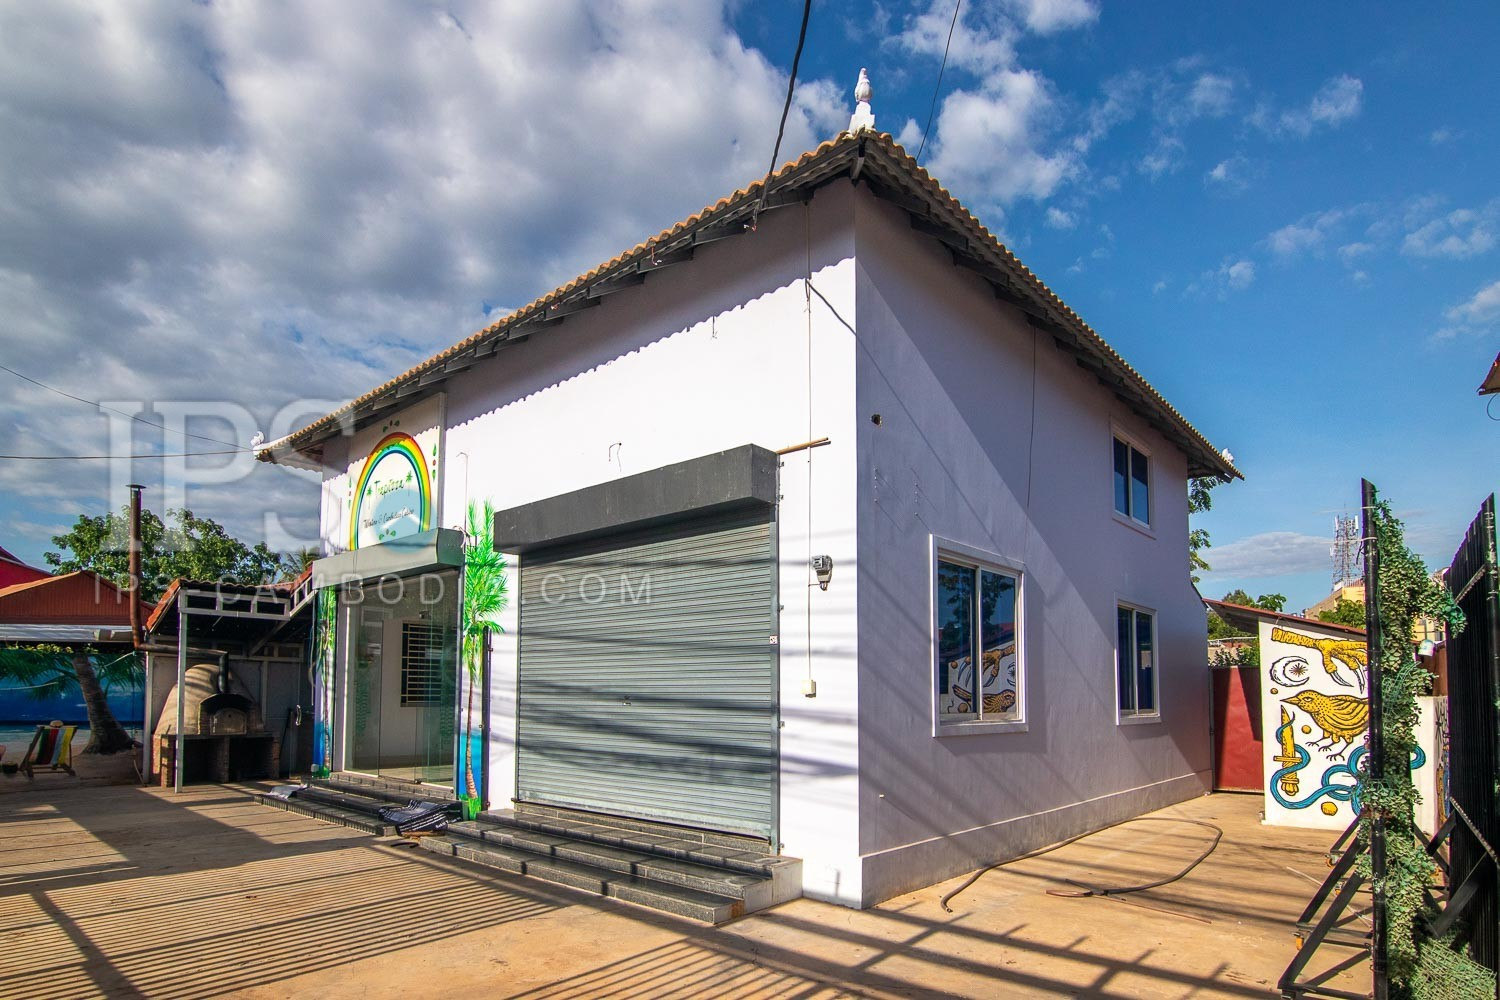 2 Bedroom House For Rent - Night Market Area, Siem Reap